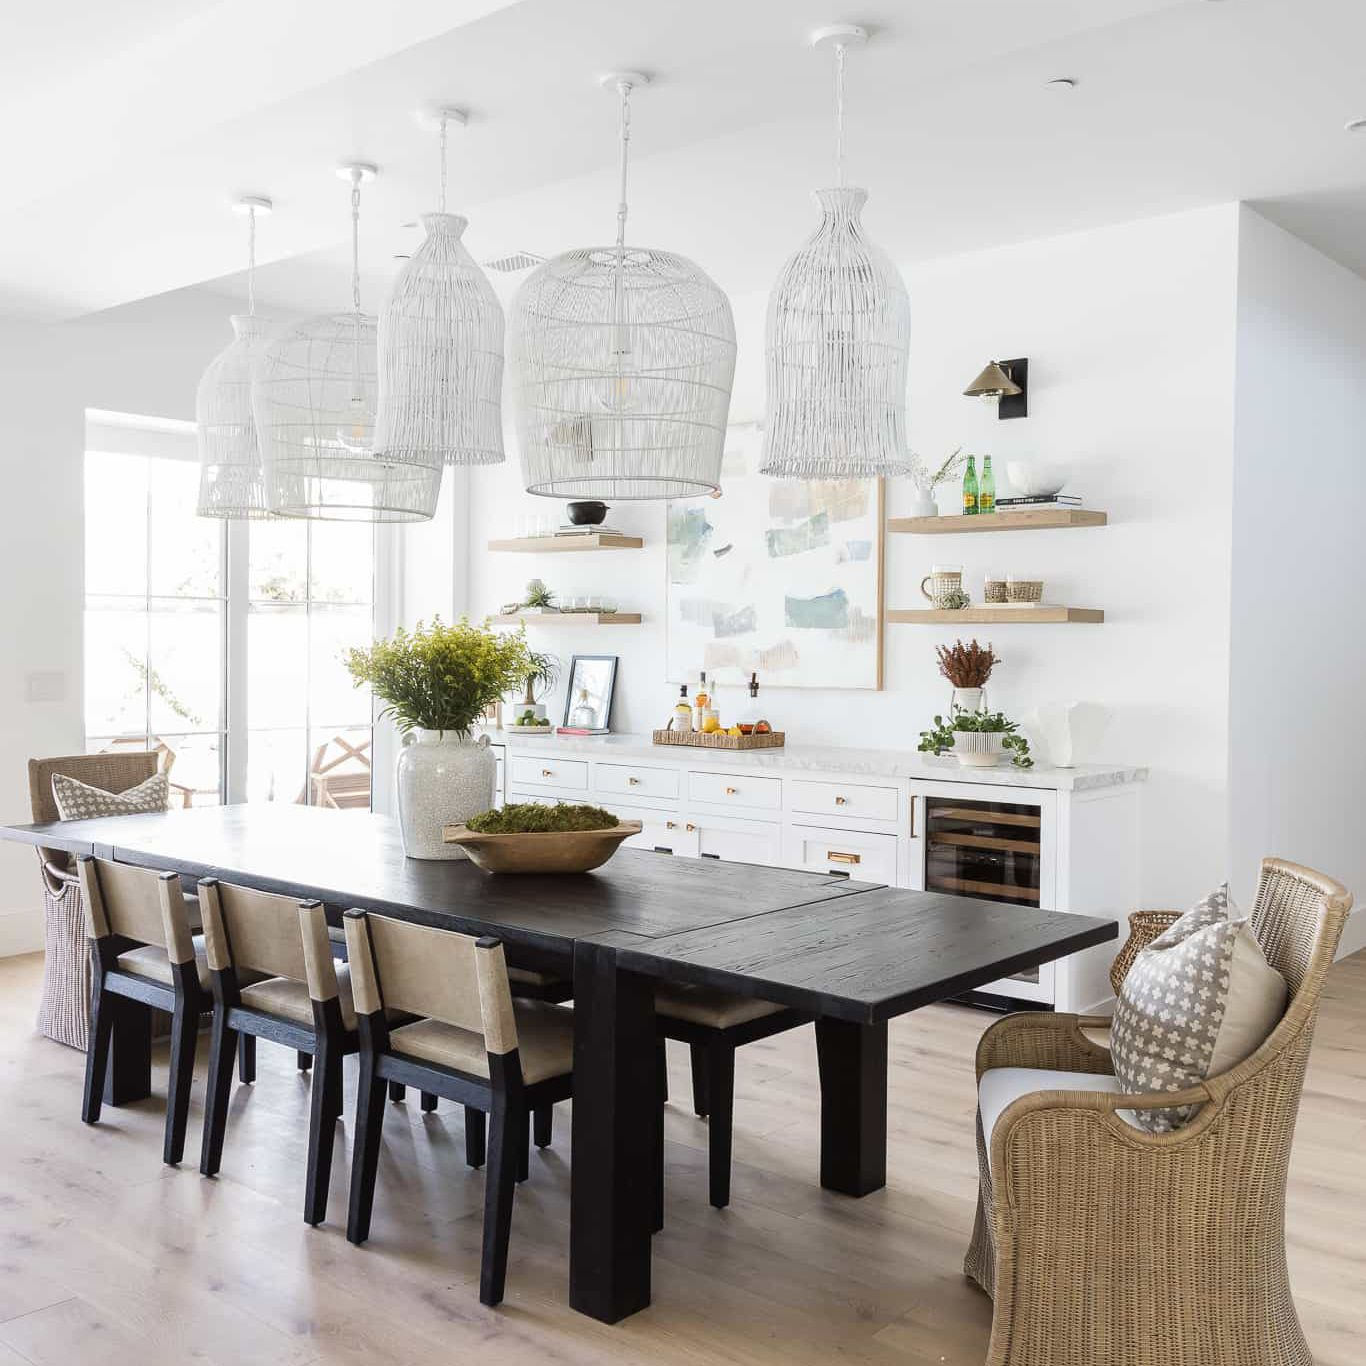 26 Dining Room Light Fixture Ideas You, Dining Room Fixtures